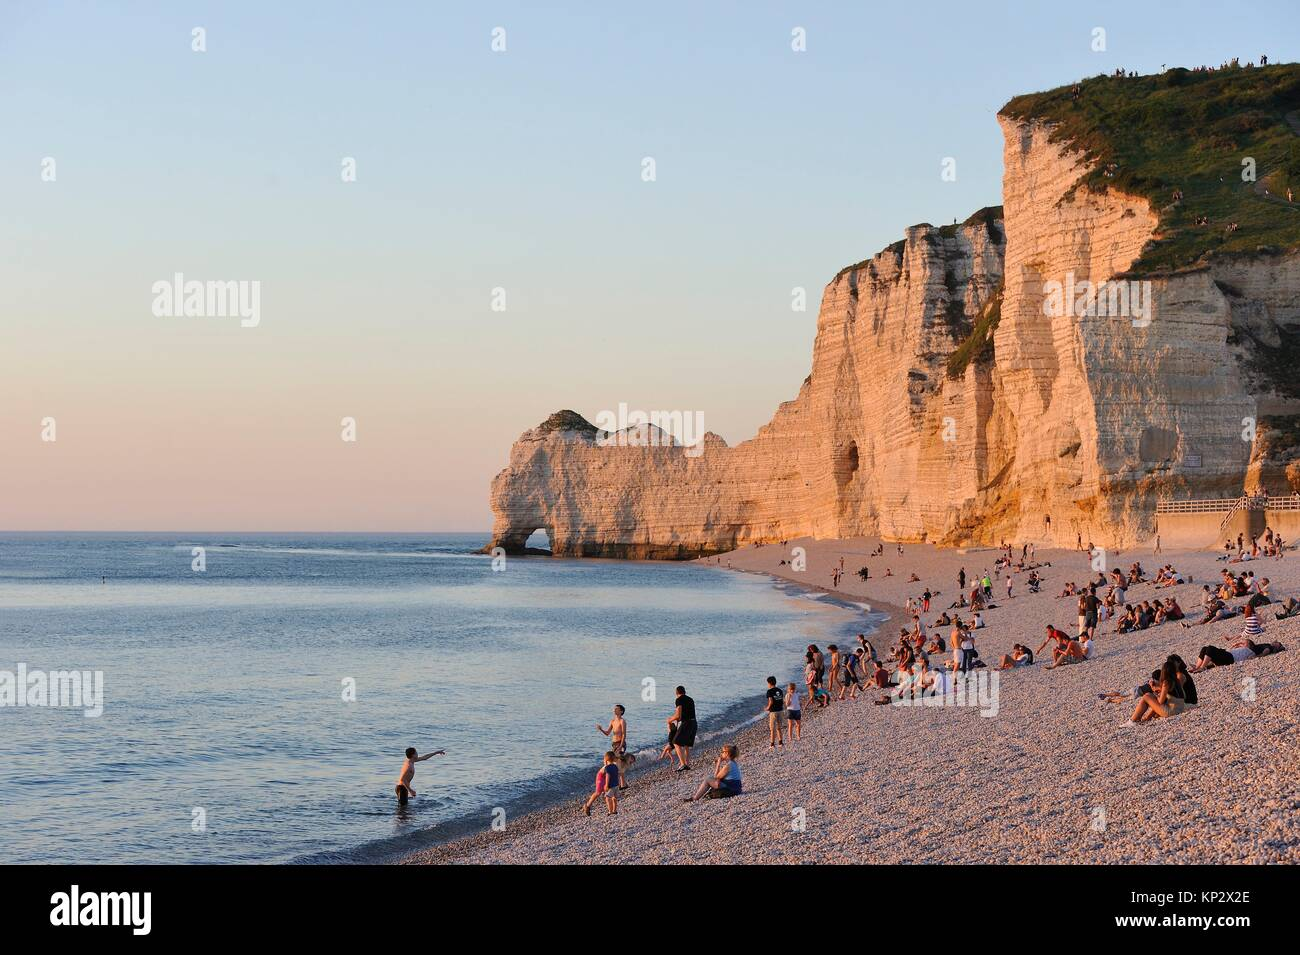 people enjoying sunset on the beach of Etretat, Seine-Maritime department, Normandie region, France, Europe. - Stock Image